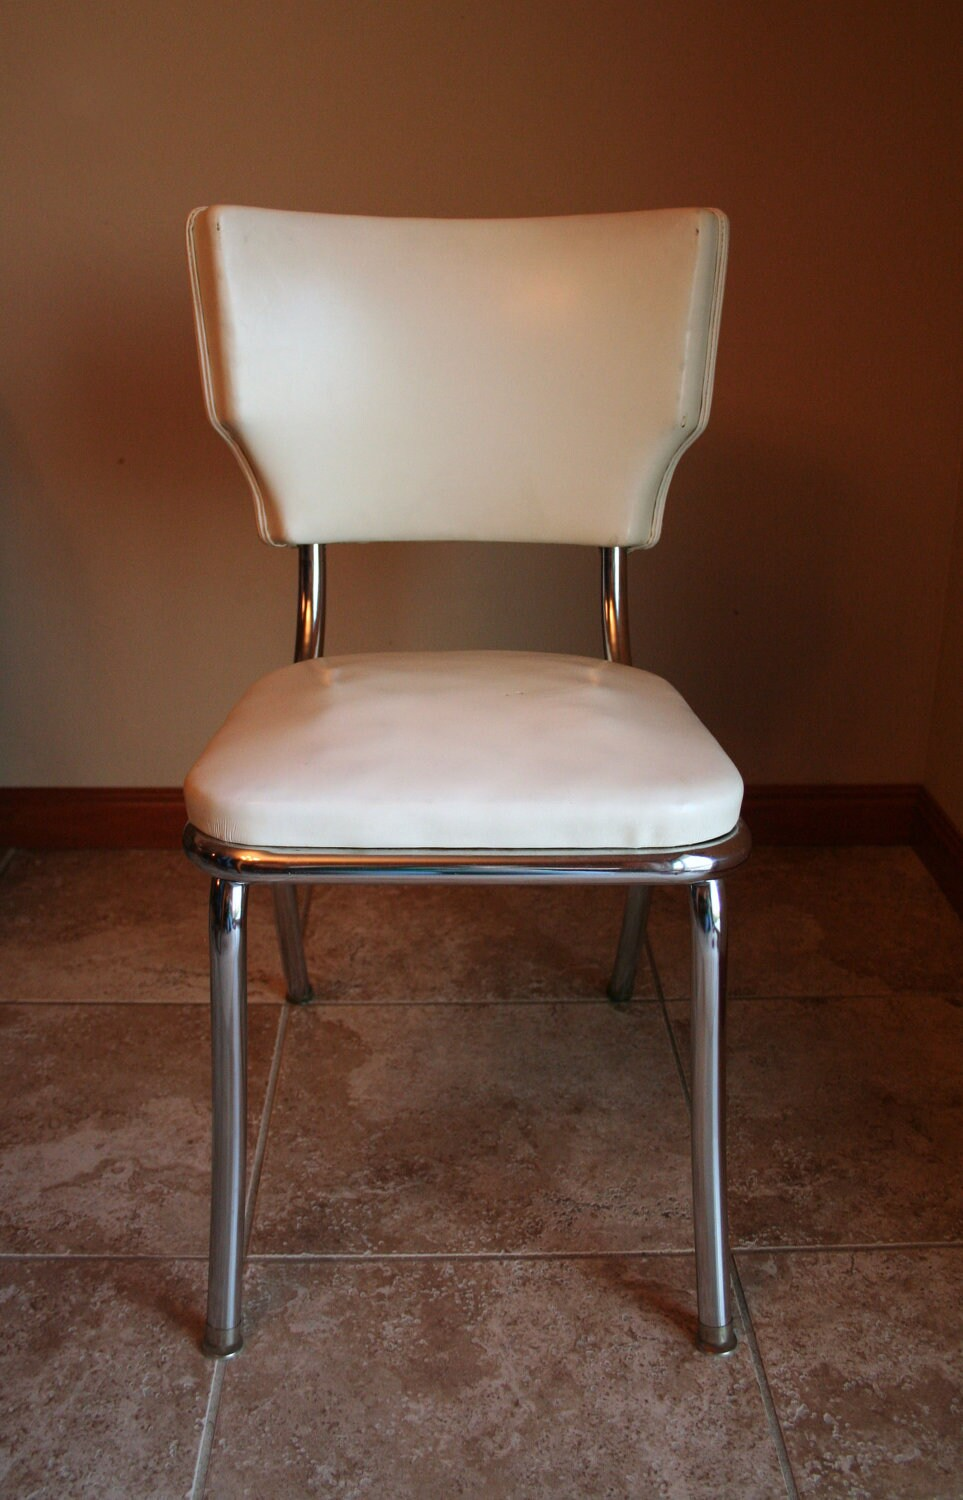 Retro White Vinyl Kitchen  Desk Chair Mid By Turtlehillshop. Pictures Living Room. 2 Couch Living Room Ideas. Wall Storage Ideas For Living Room. Living Room Leather. Small Library Living Room Ideas. Living Room With Cream Sofa. Best Colour Paint For Living Room 2017. Large Grey Living Room Rugs